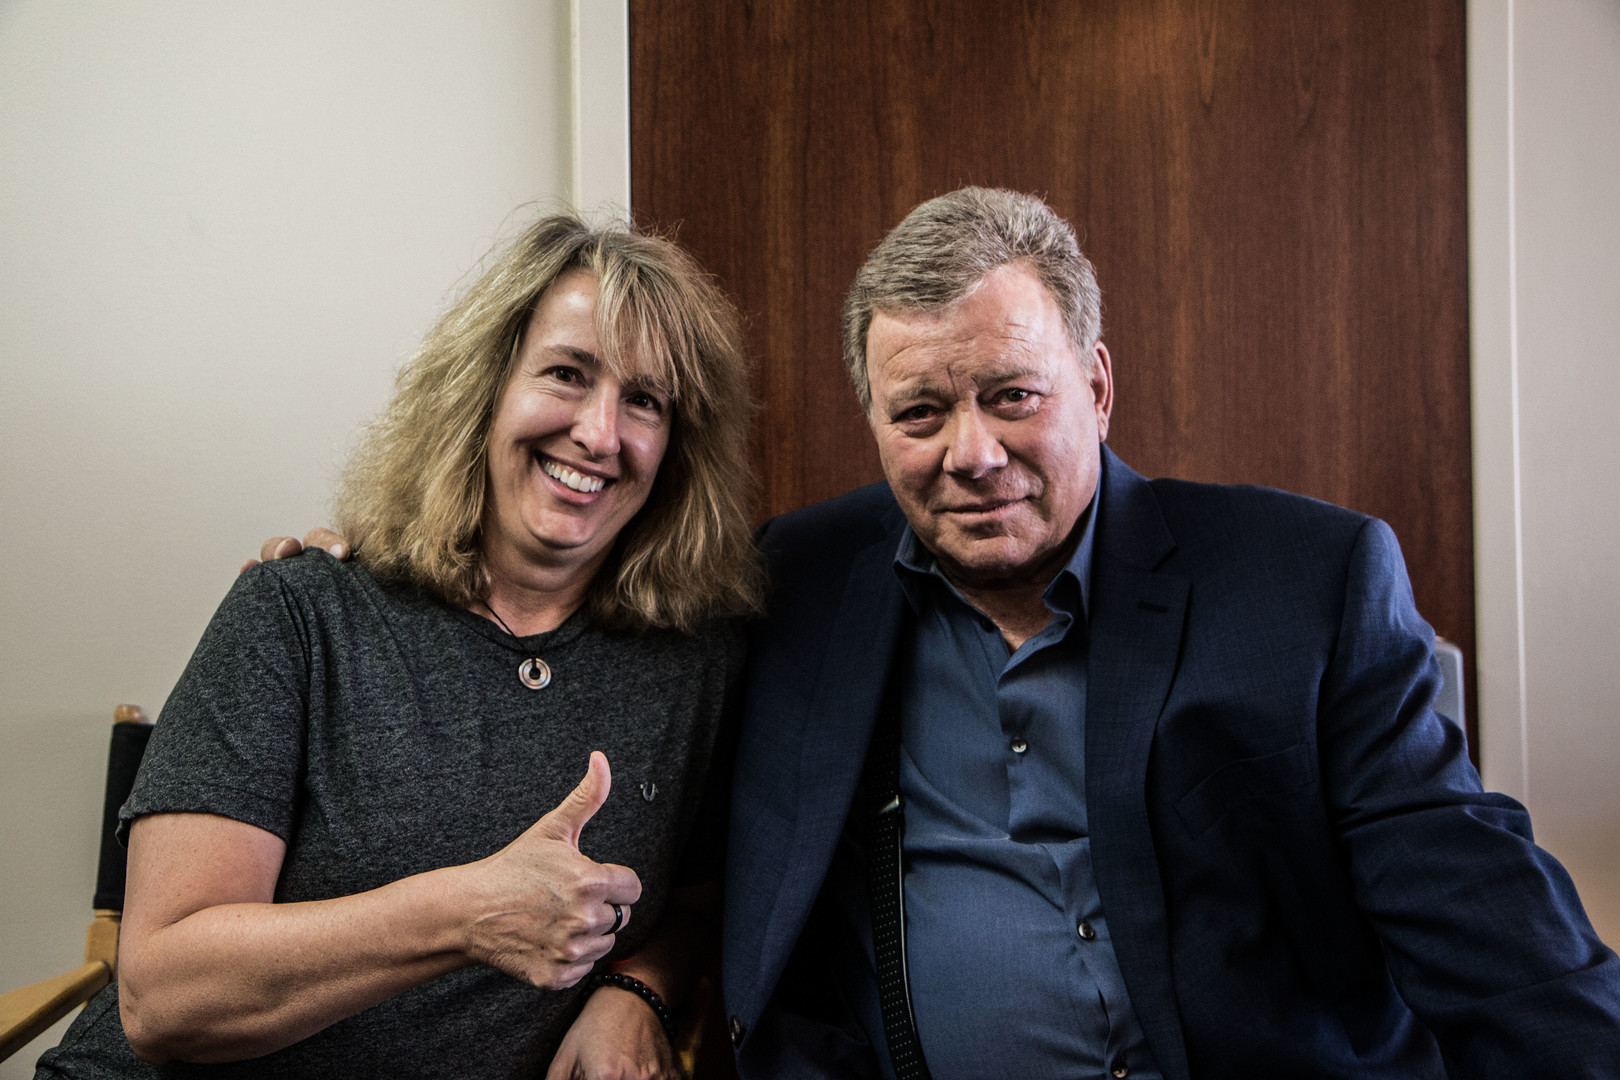 William Shatner and Gina G. Goff in Senior Moment (2021)